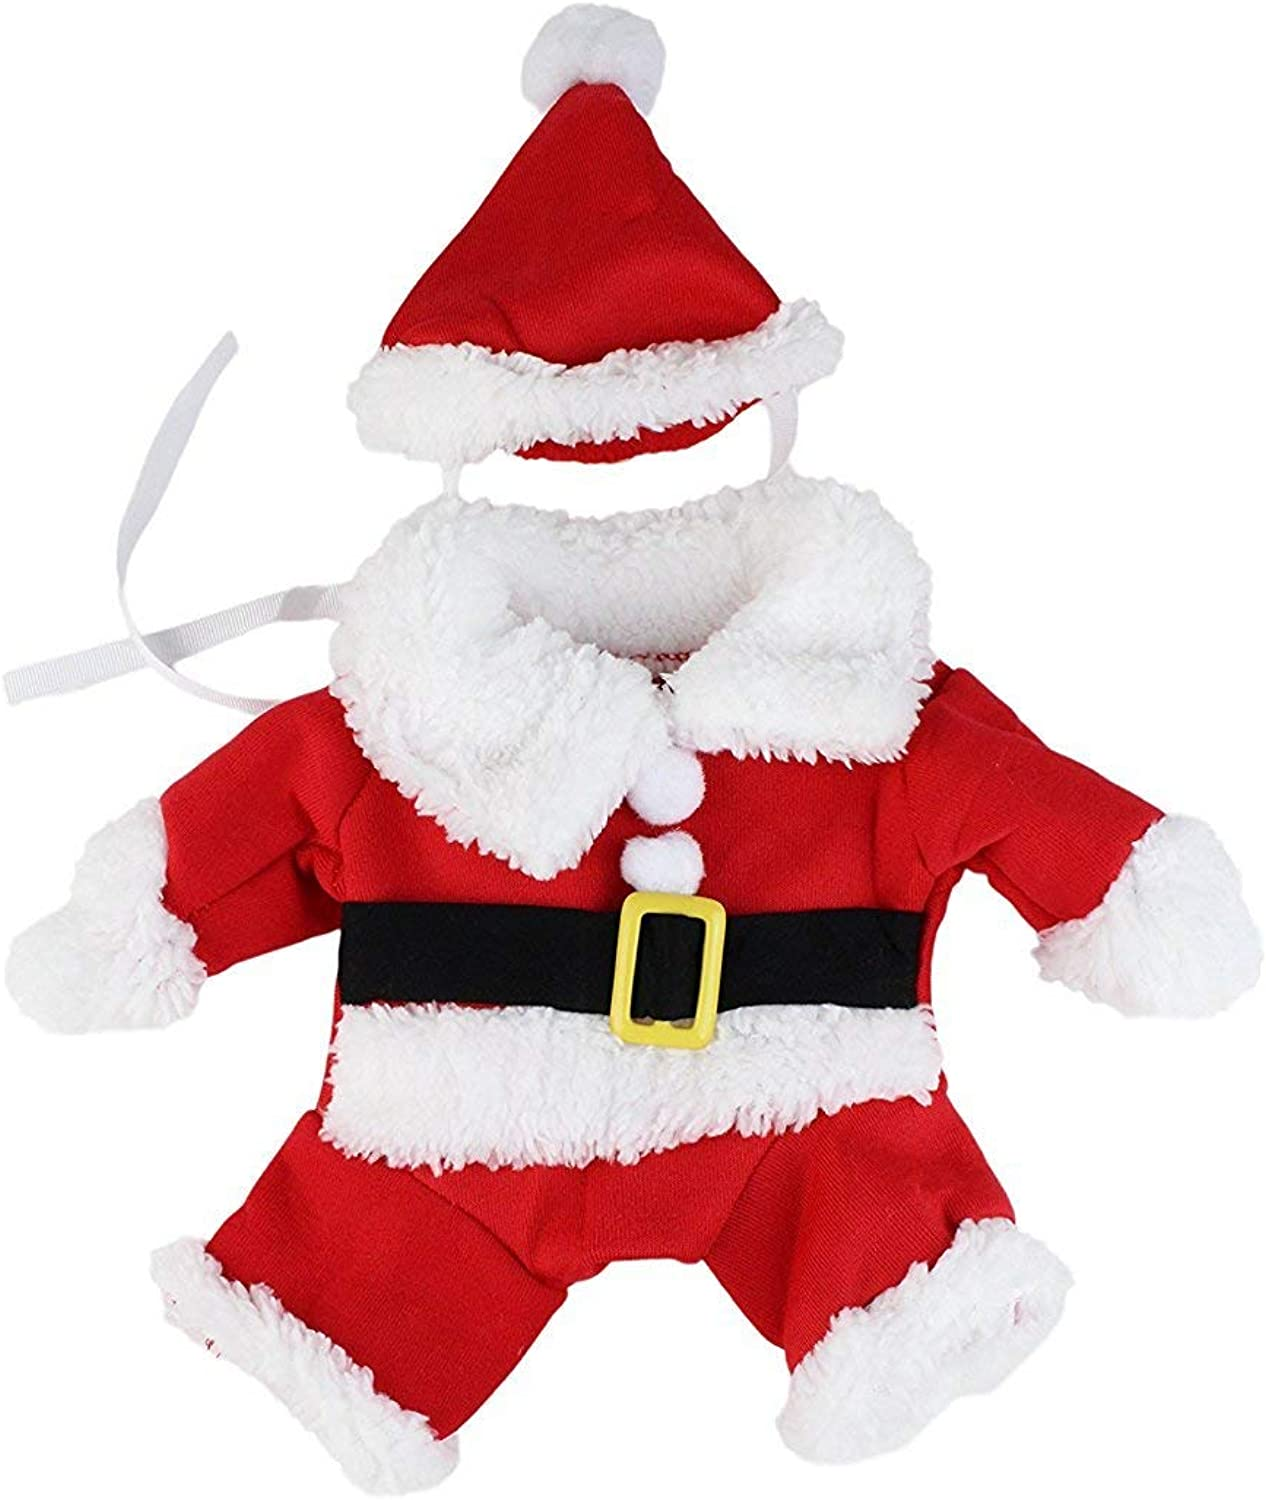 Fake Arms Small Dog Santa Christmas Costume by Midlee (Small Dog Large)